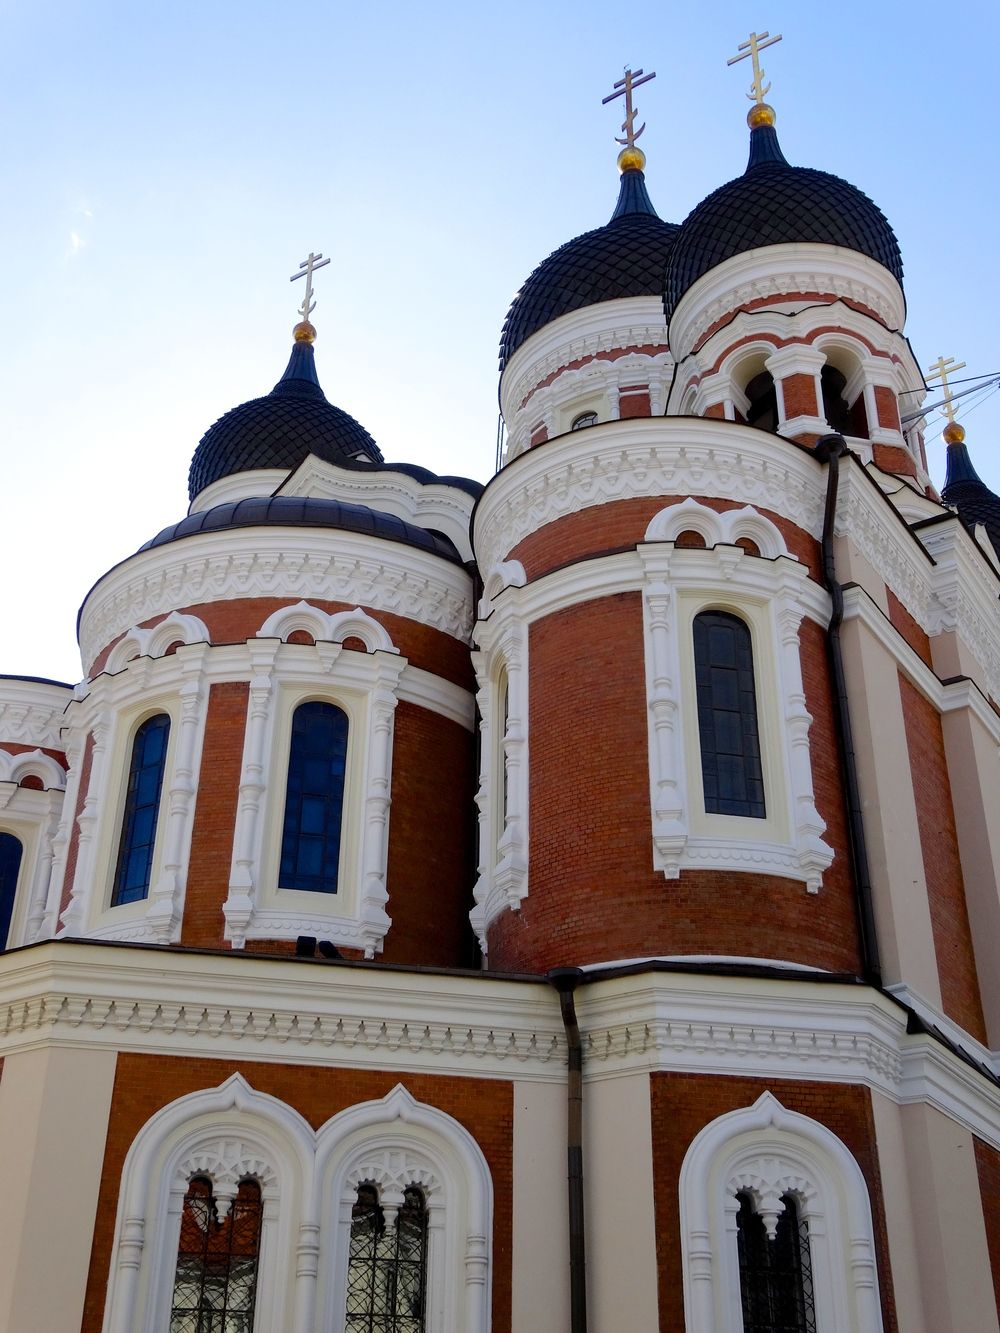 Top 9 things to do in Tallinn: Alexander Nevsky Cathedral